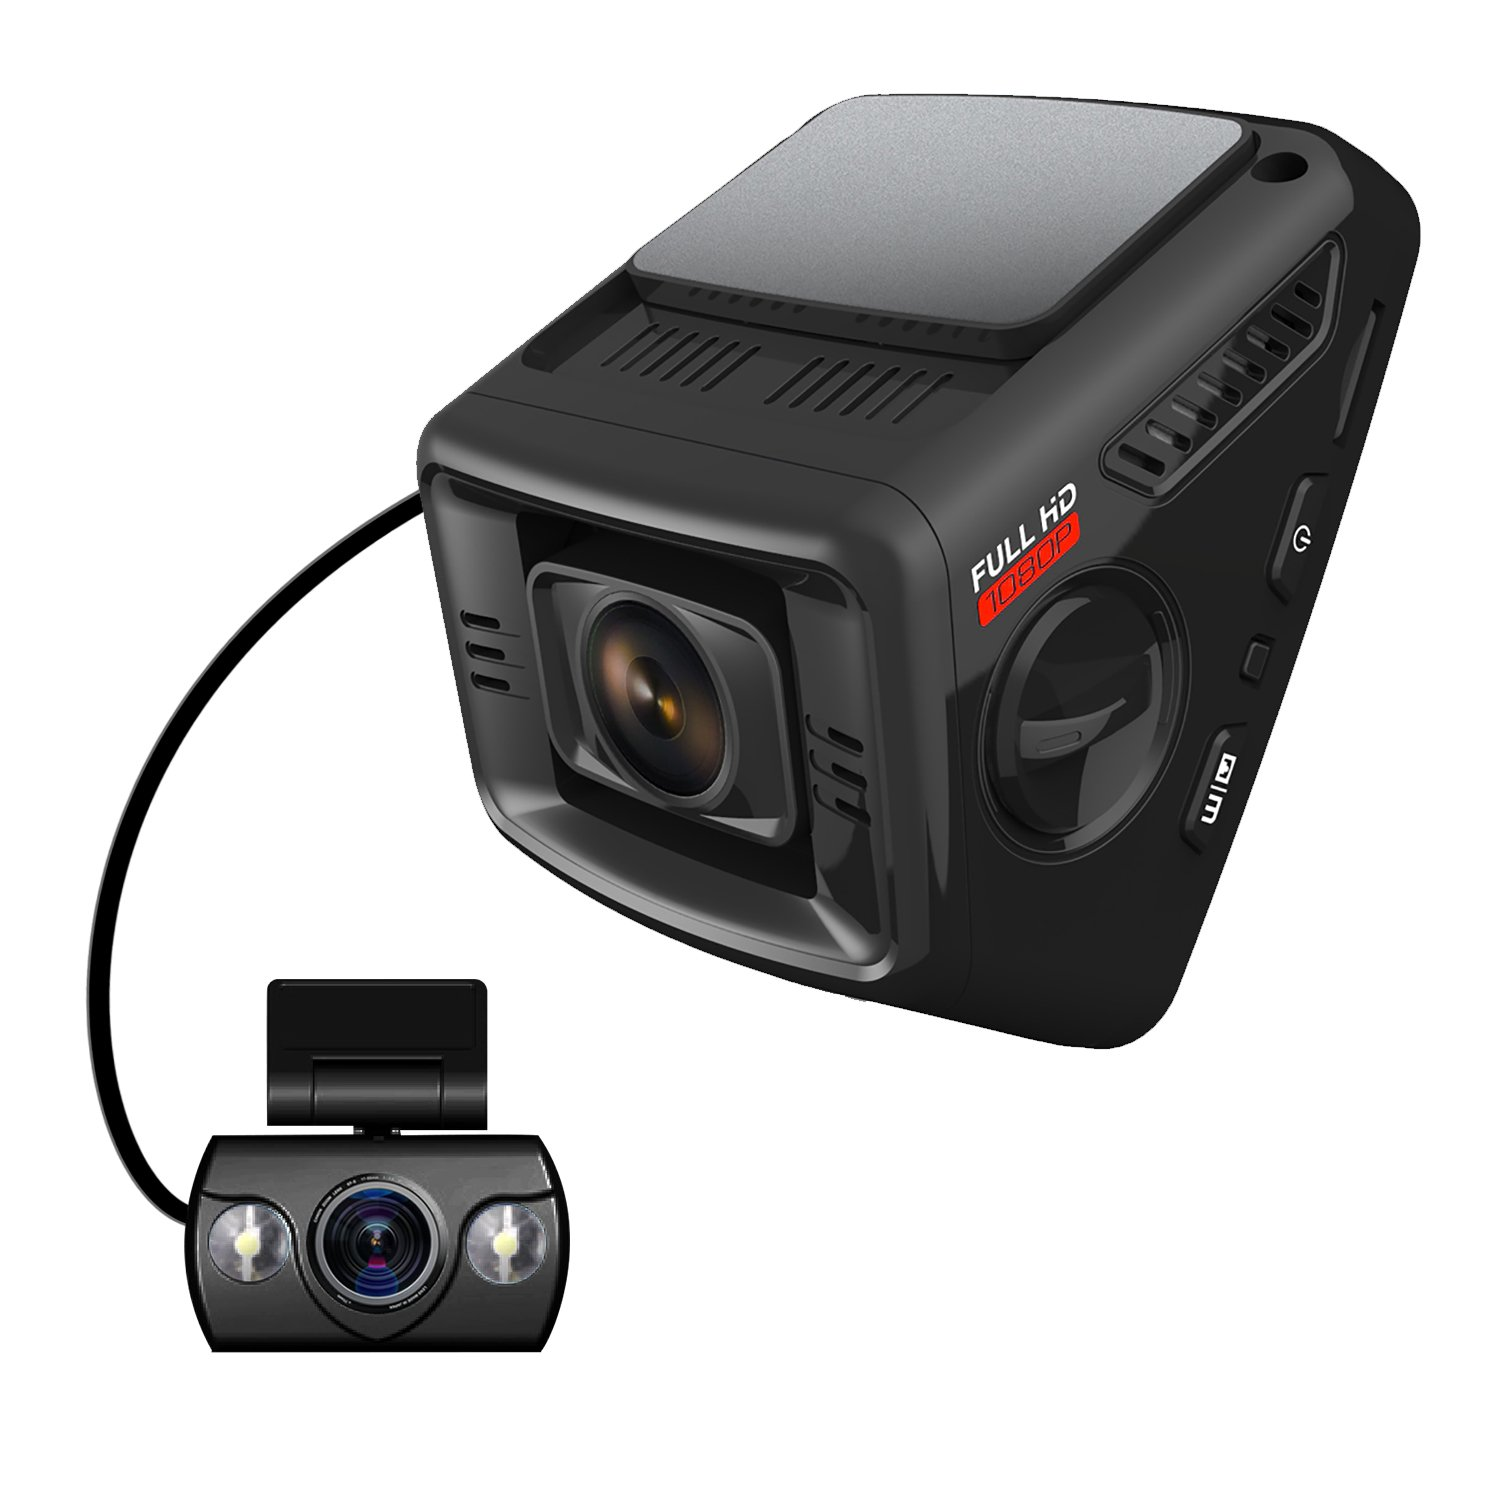 ITRUE X6D Dual Car Dash Cam Pro Stealth Full-HD 1080P 170°Wide Angle, Night Mode, G-Sensor, WDR, 16GB MicroSD Card and Hard Wire Kit by iTrue